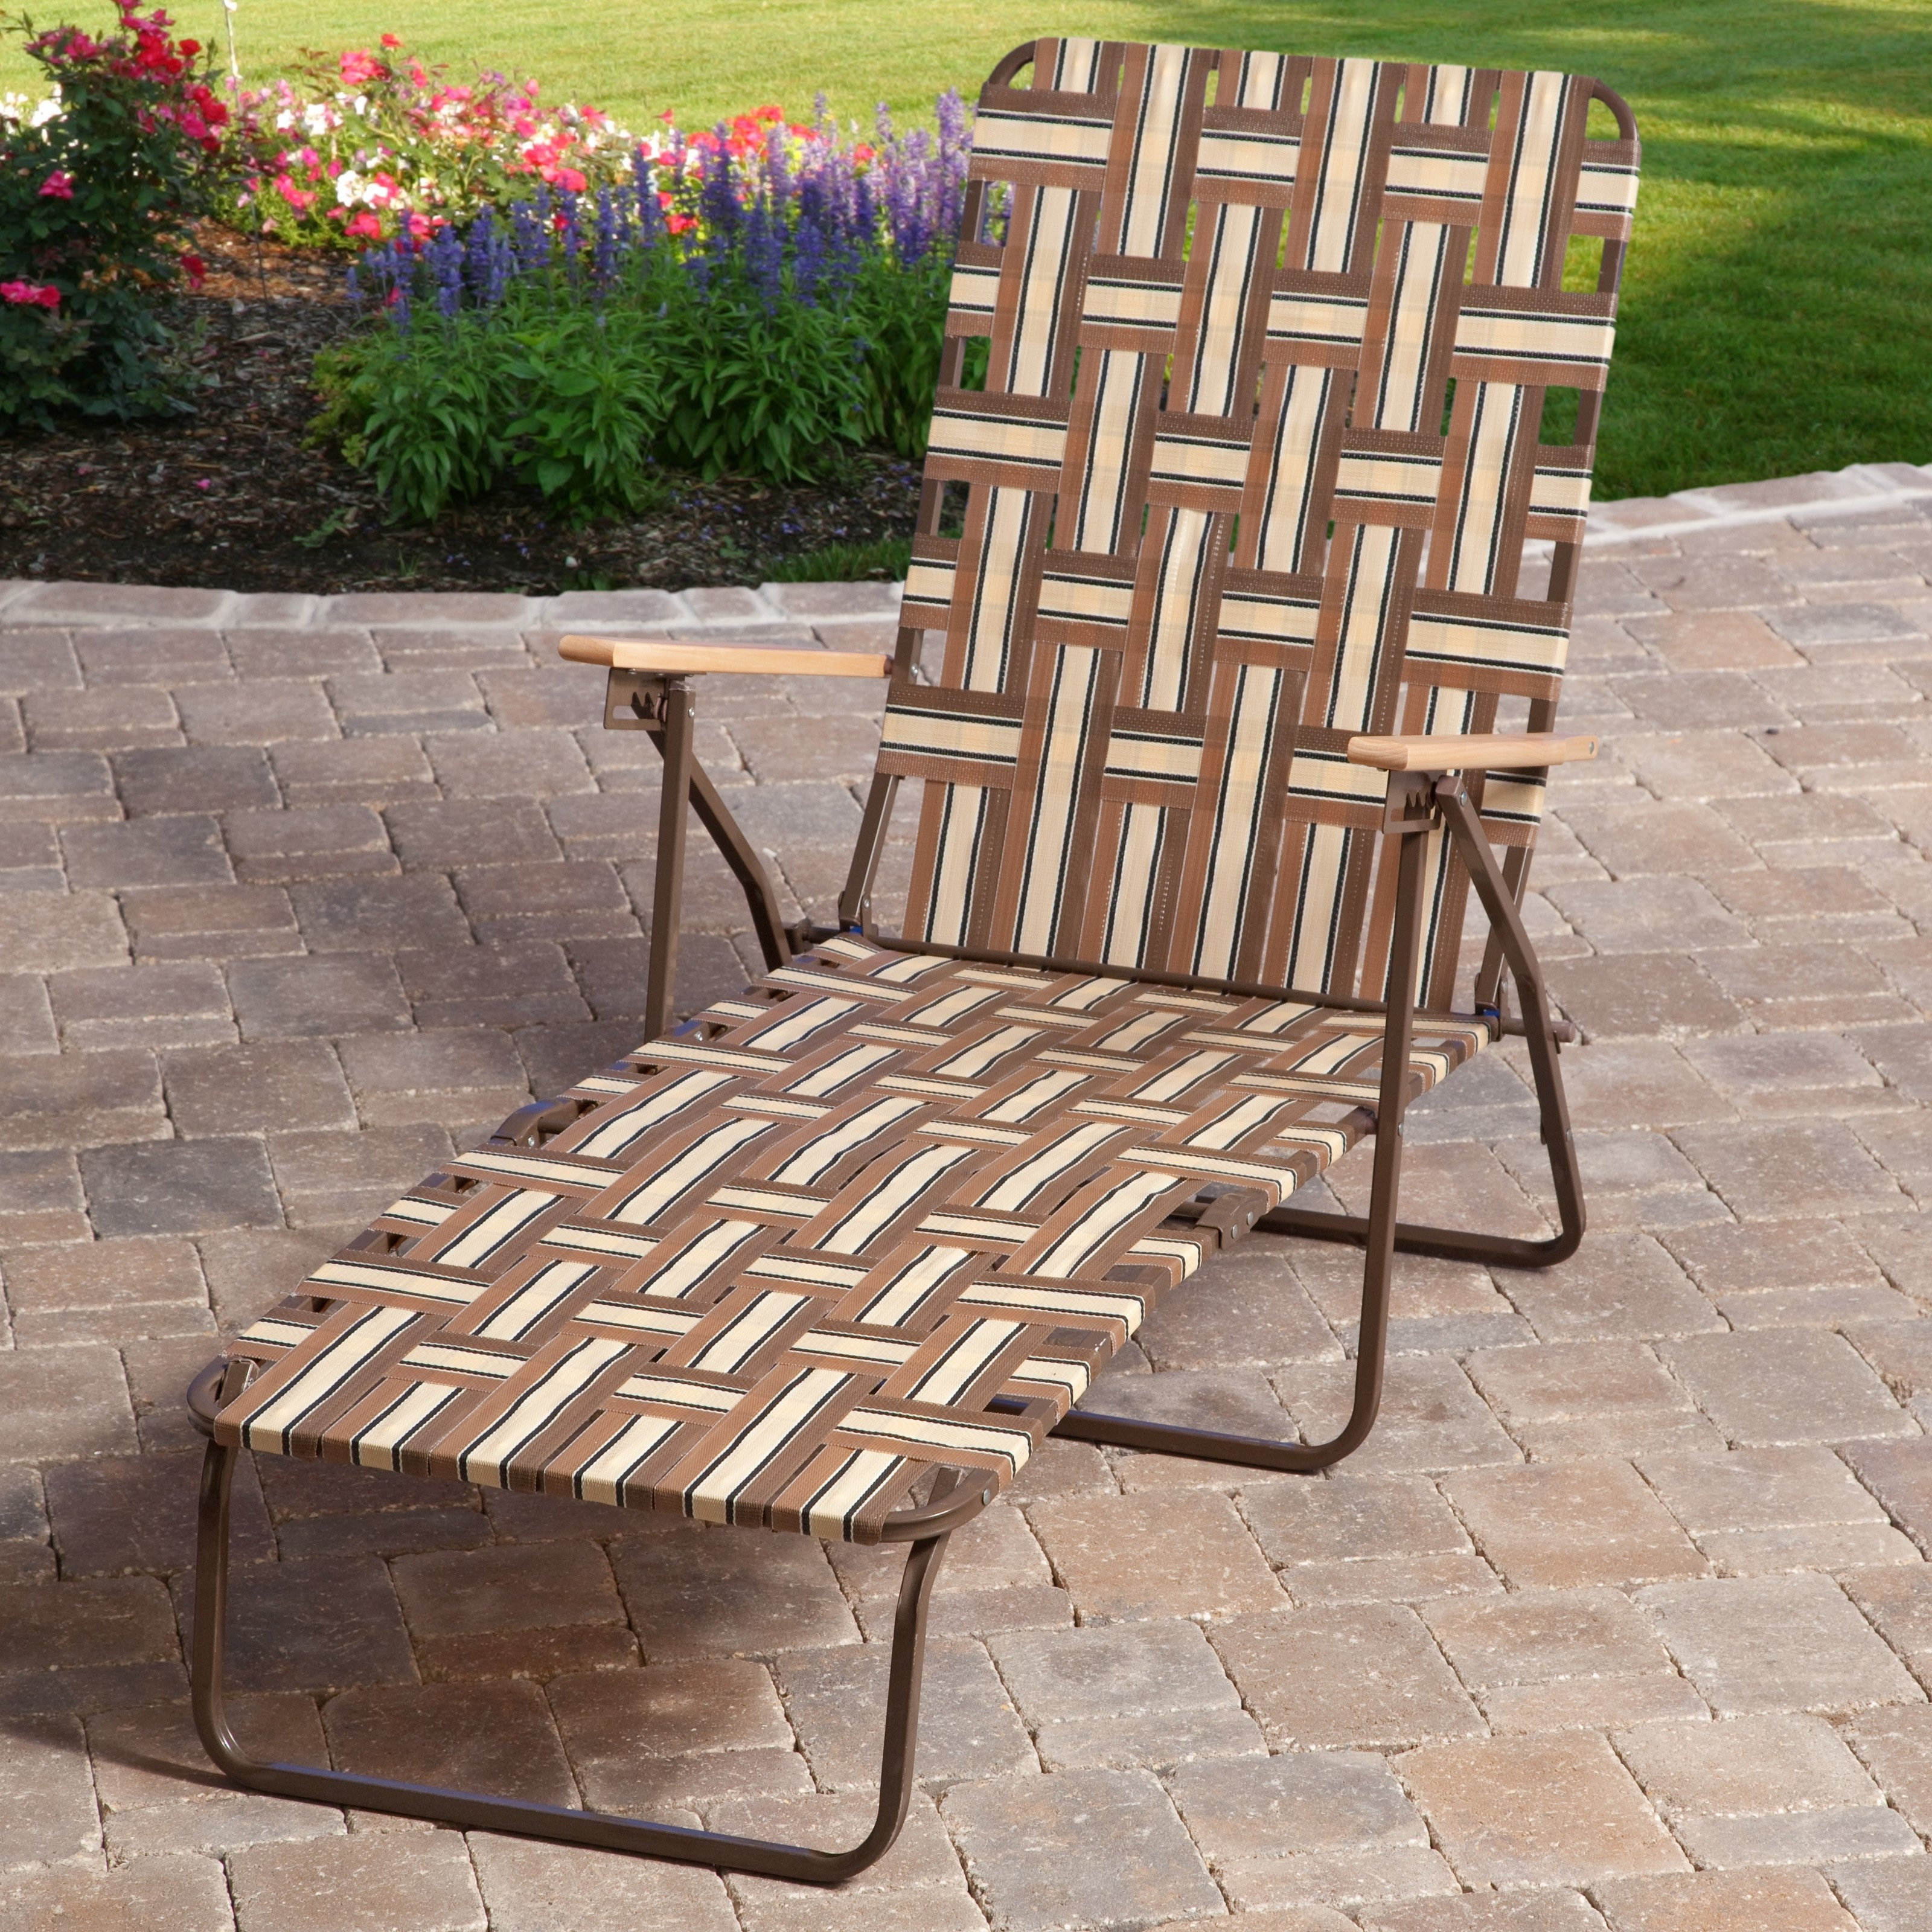 Outdoor Chaise Lounge Chairs At Walmart With Famous Rio Deluxe Folding Web Chaise Lounge – Walmart (View 3 of 15)